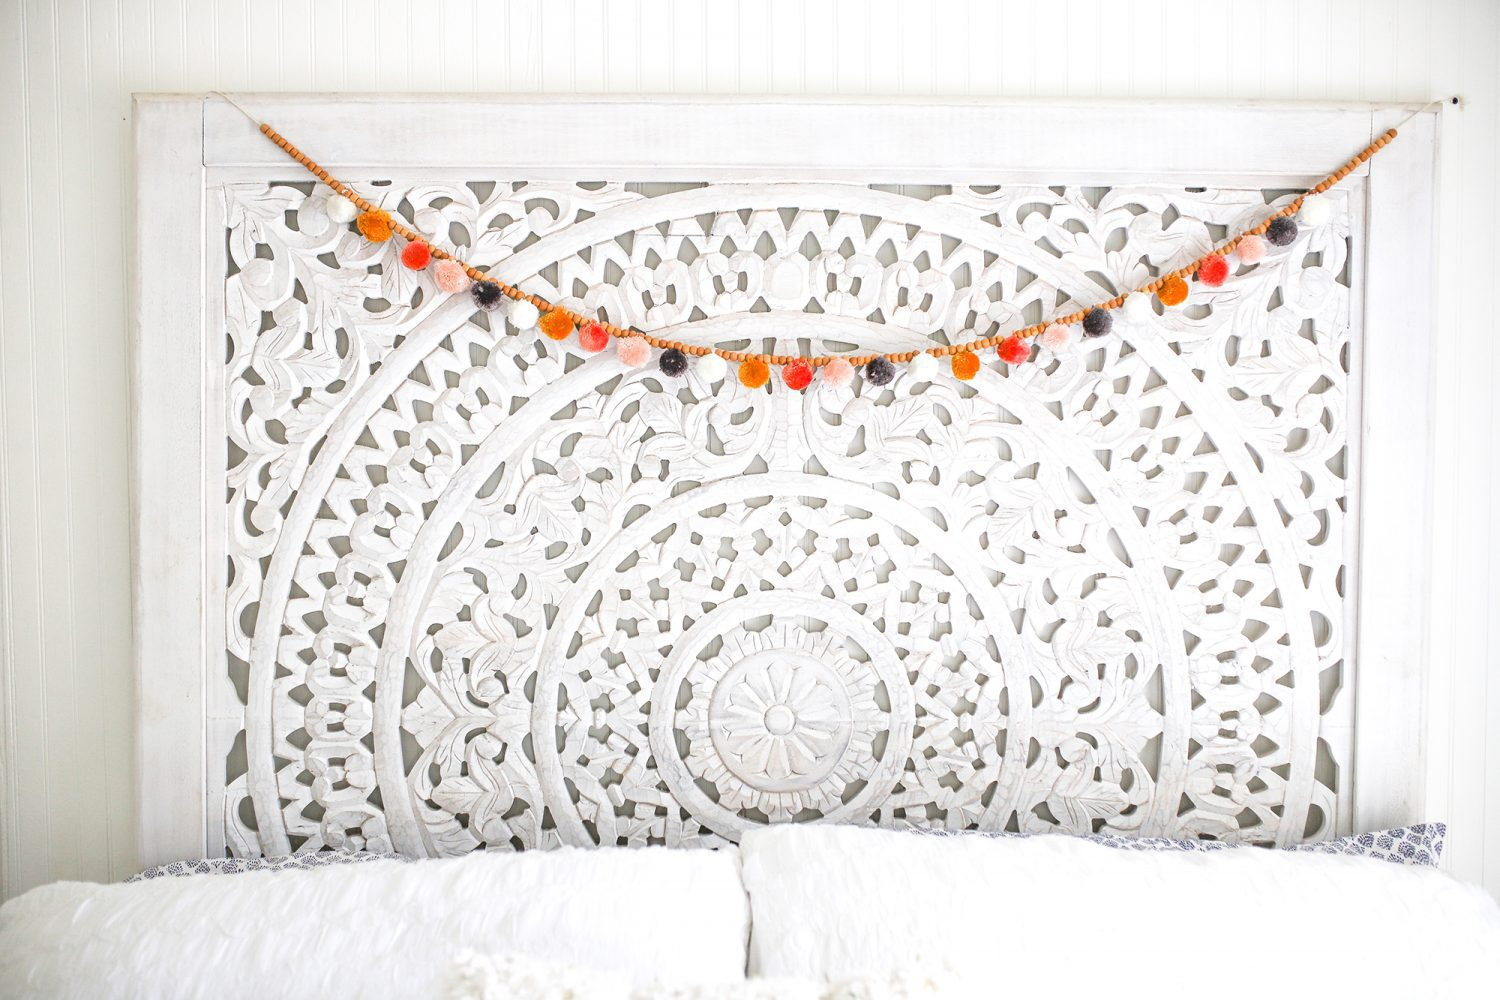 Beautiful headboard and decor at an AirBnB in Florida